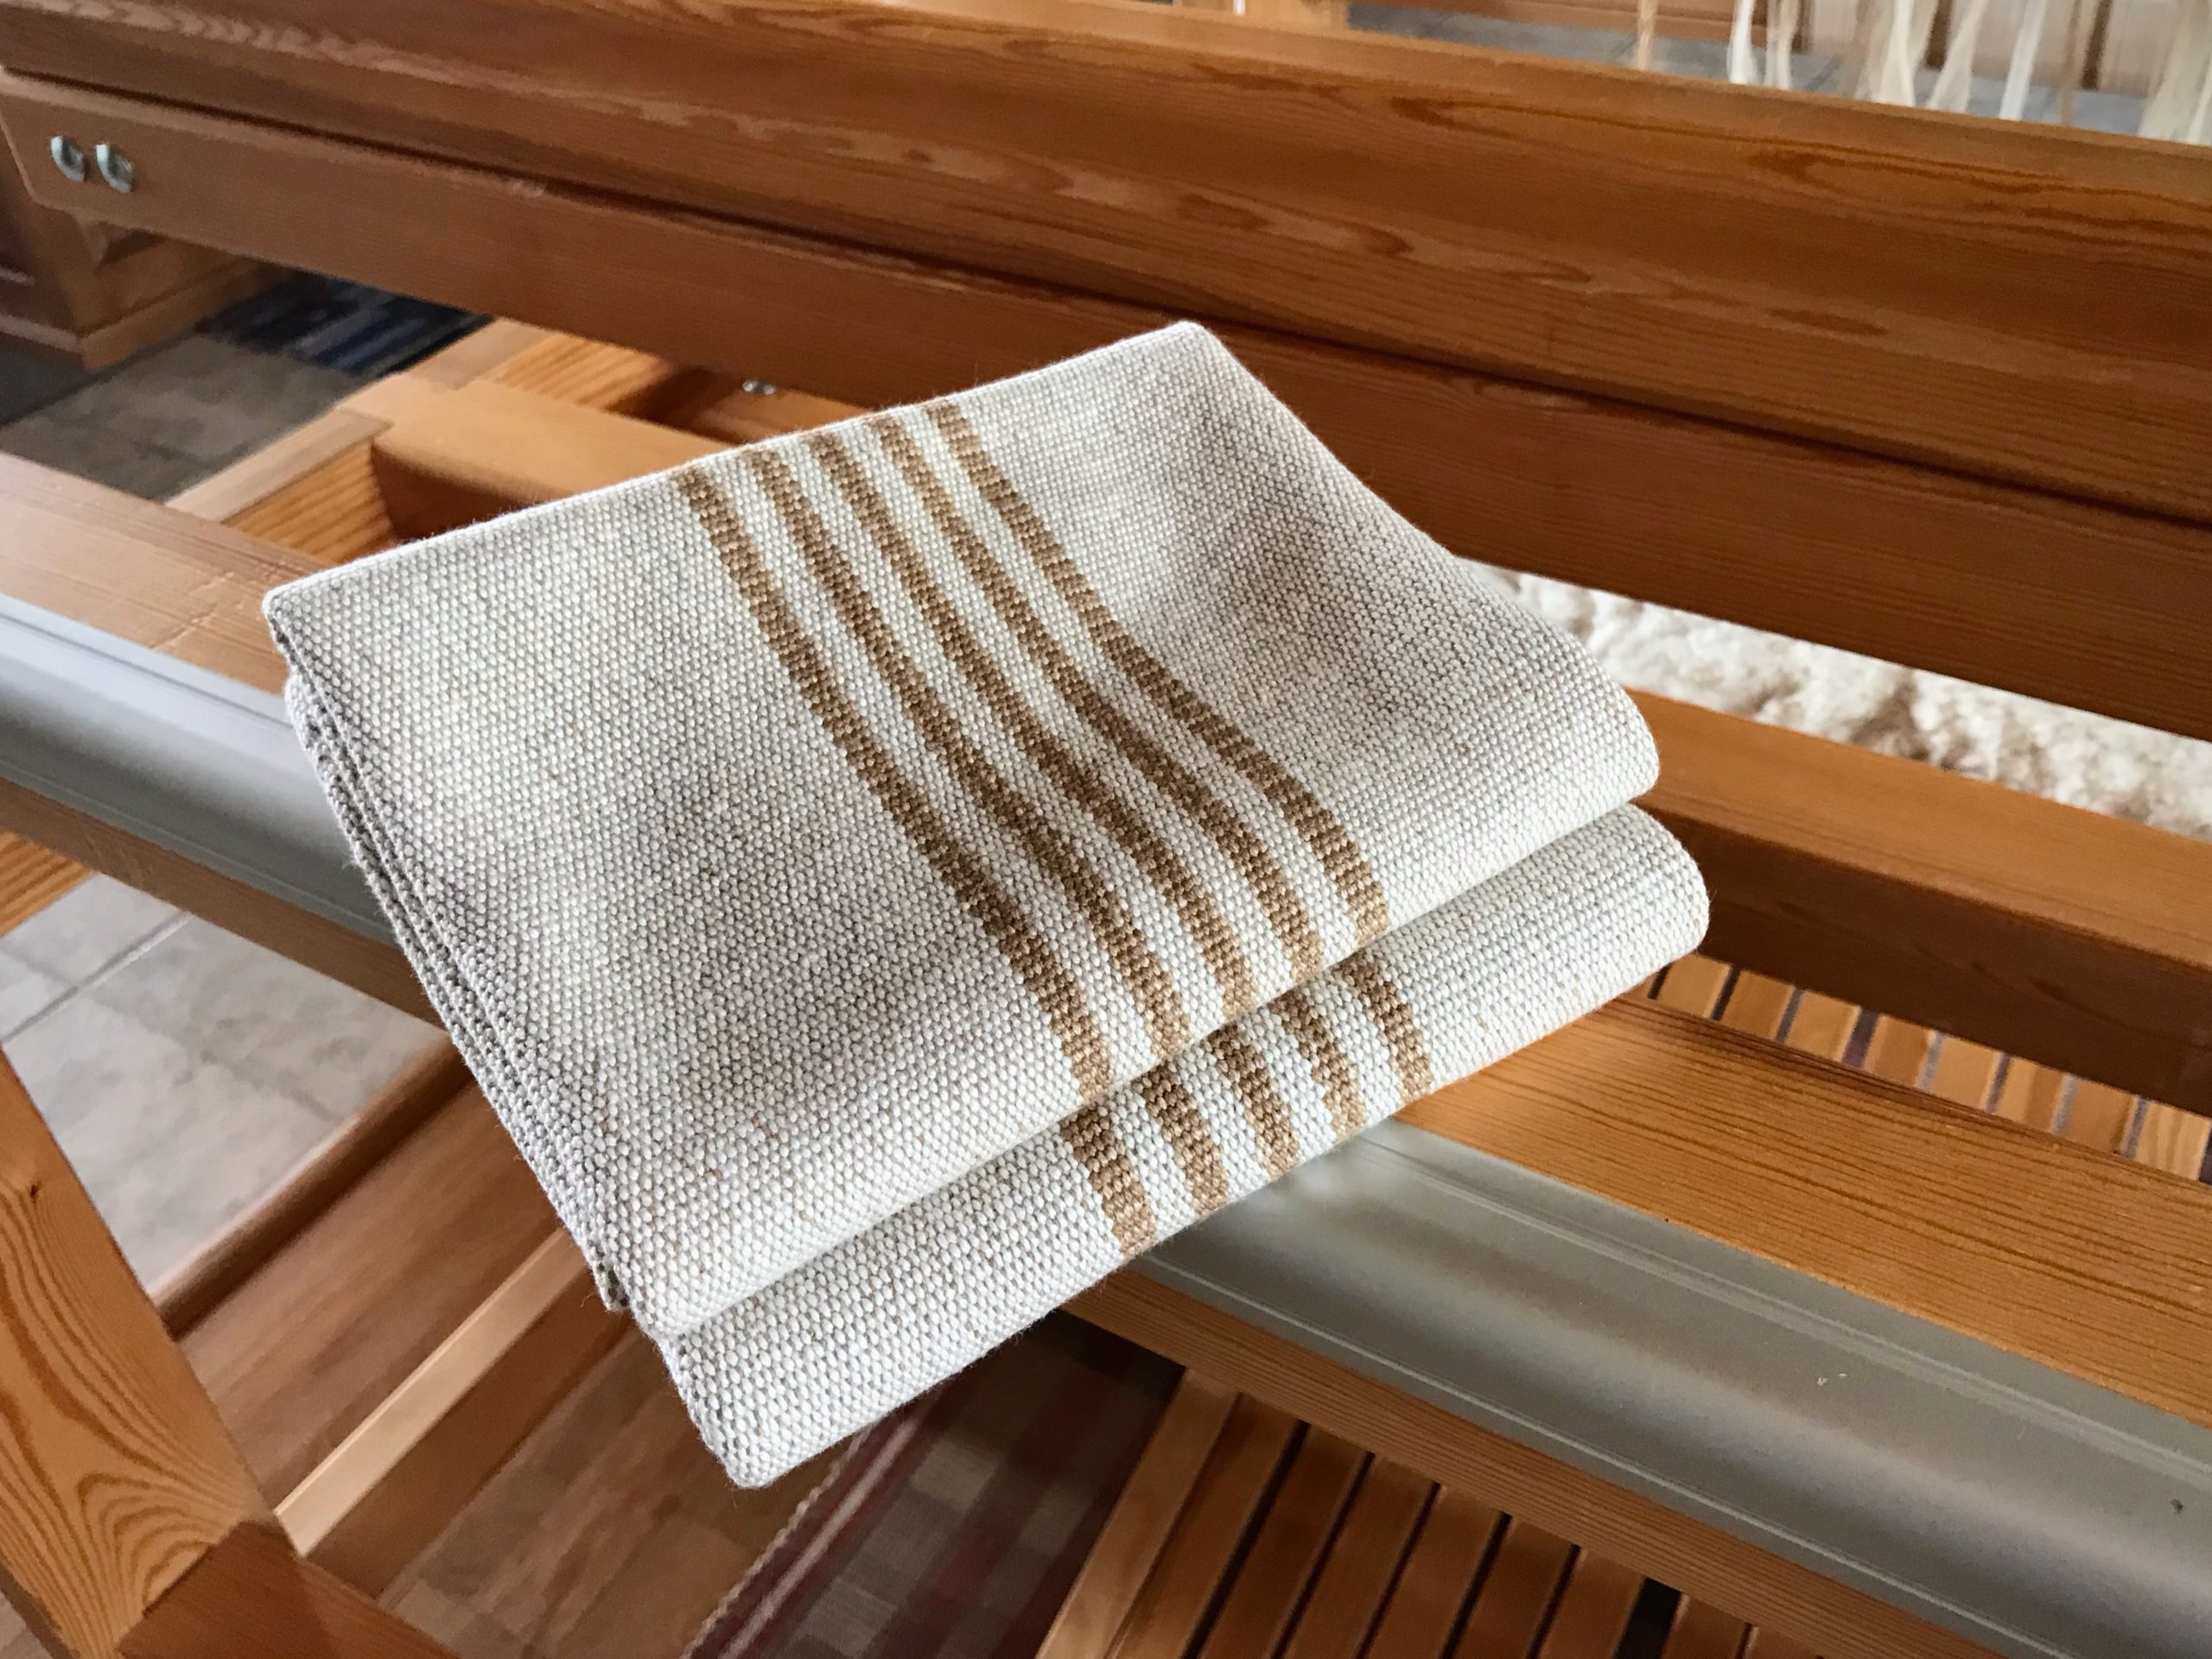 Natural colored cotton dish towels woven at Homestead Fiber Crafts.